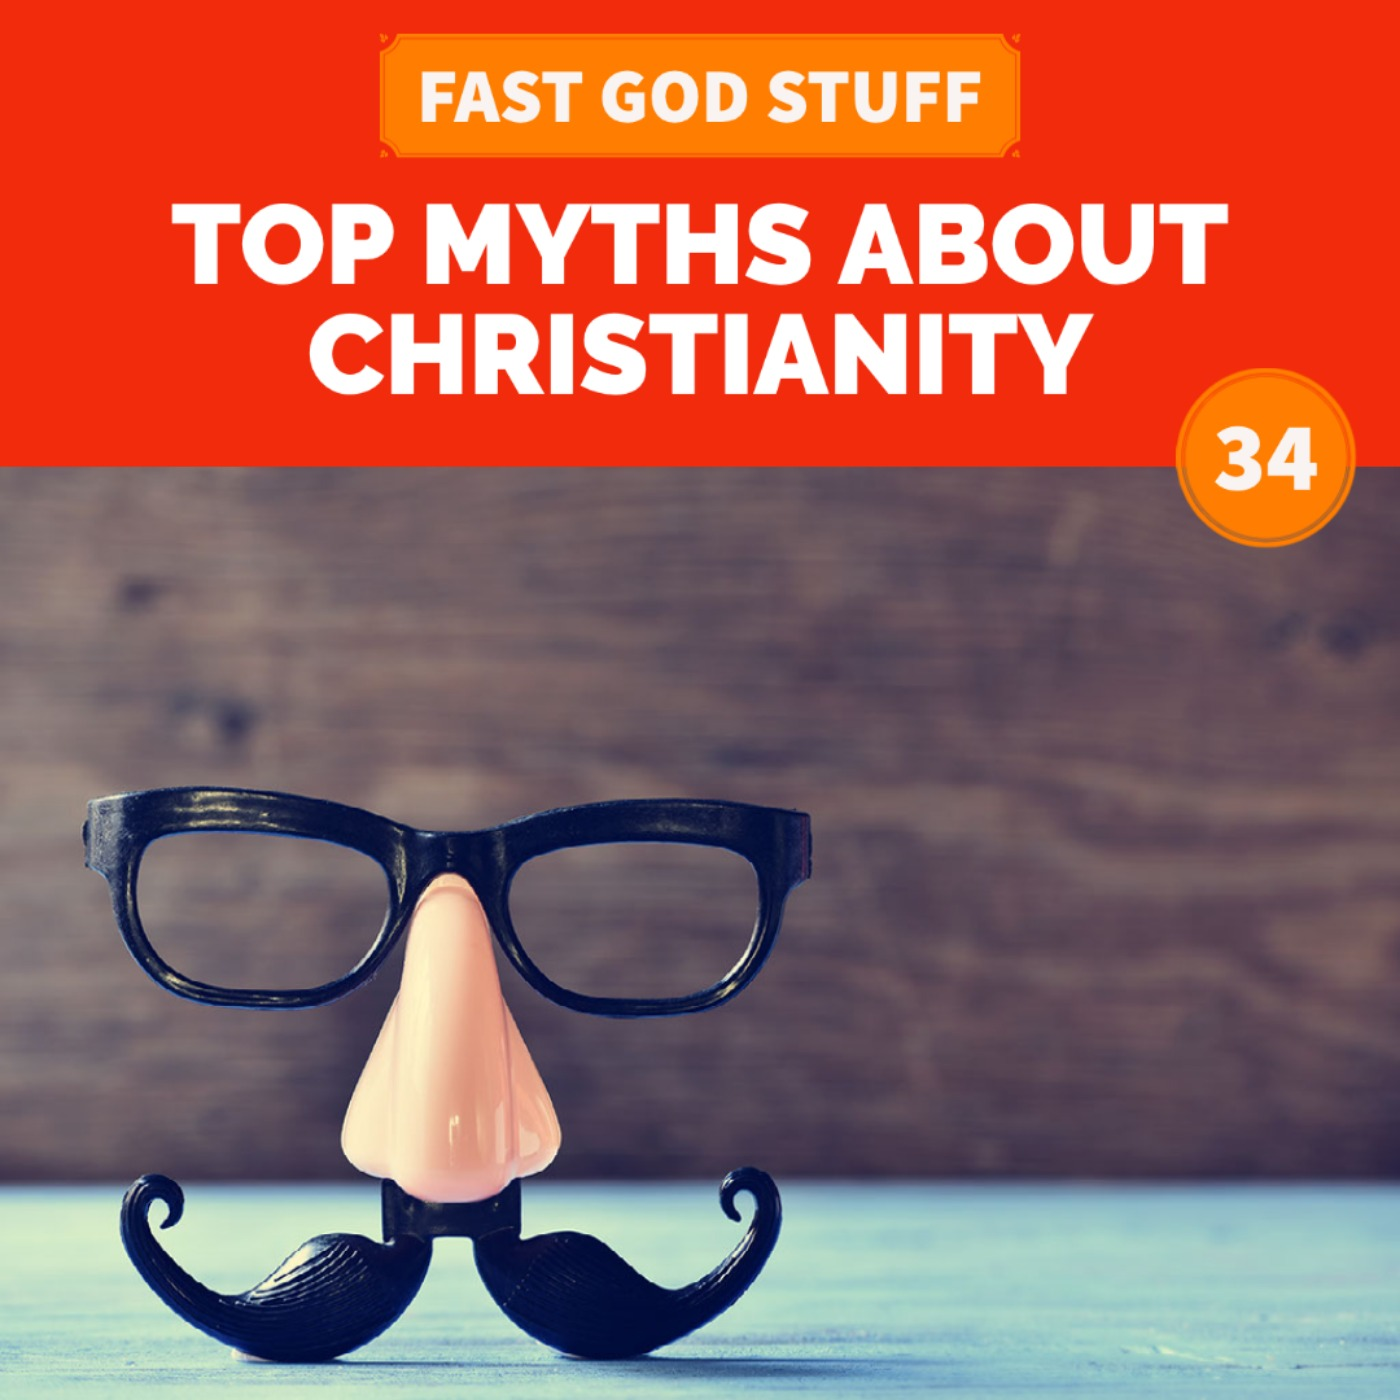 Top Myths About Christianity